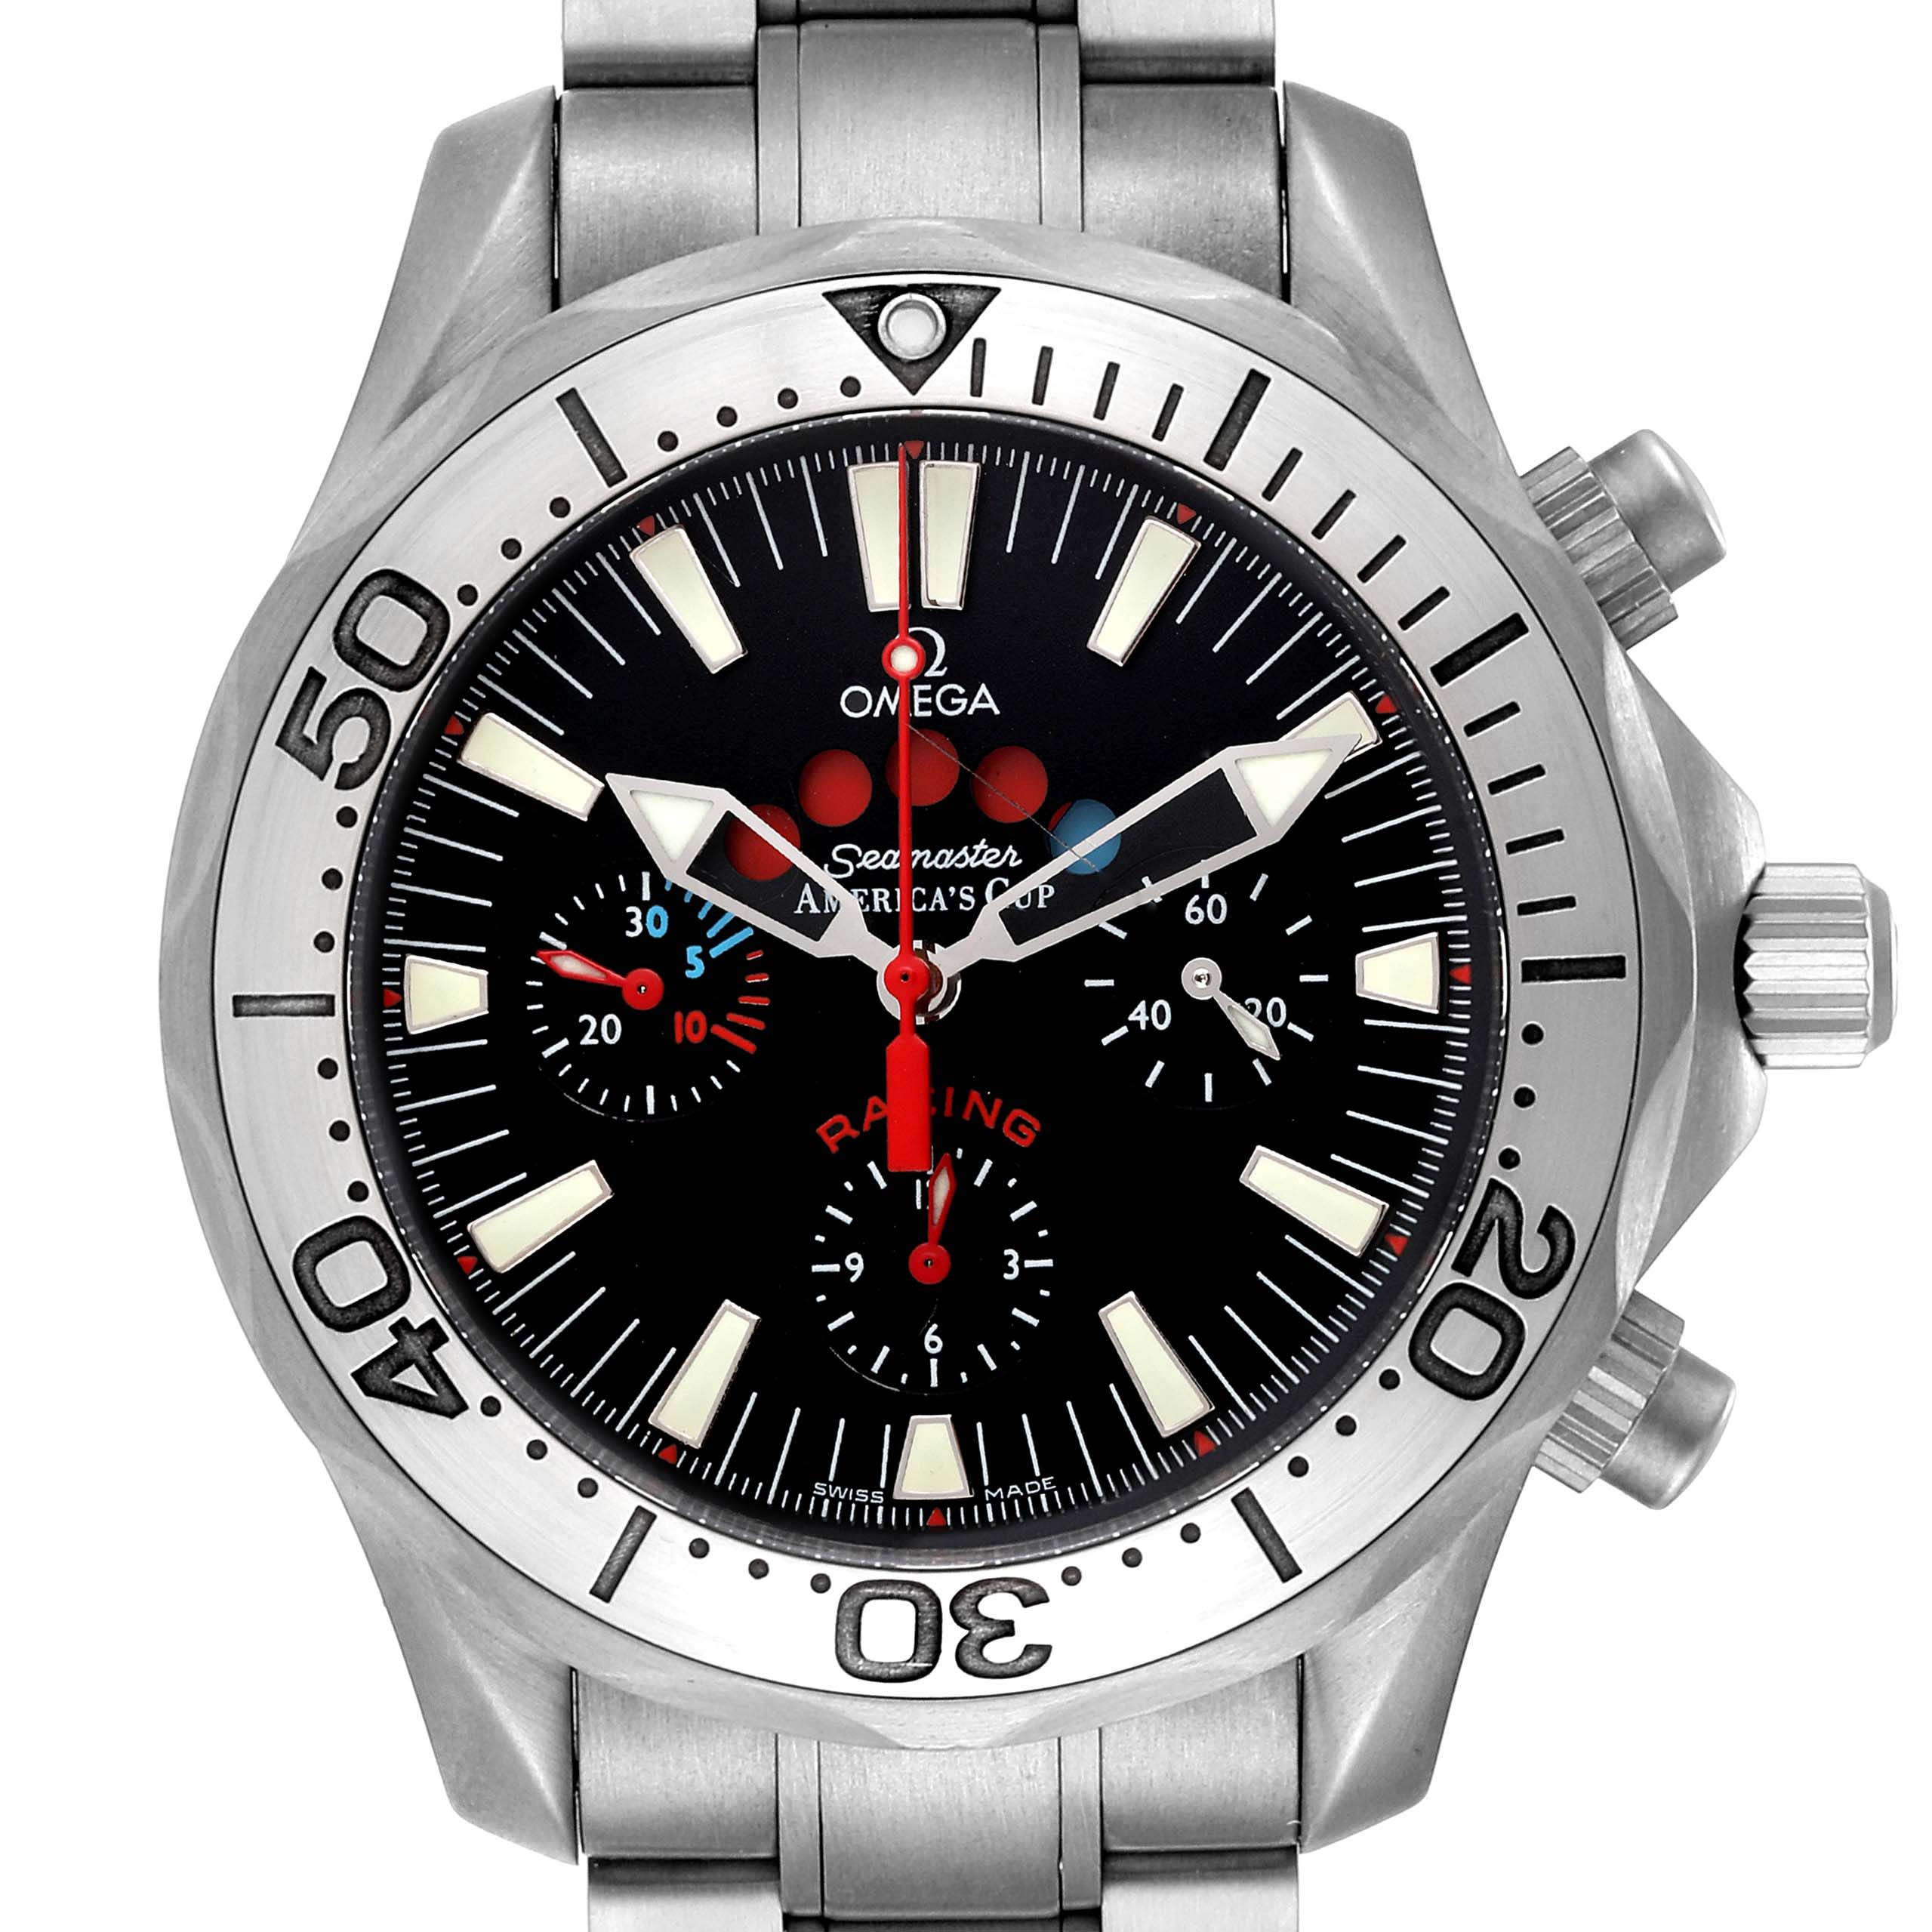 Omega Seamaster Regatta Racing Titanium Mens Watch 2269.52.00